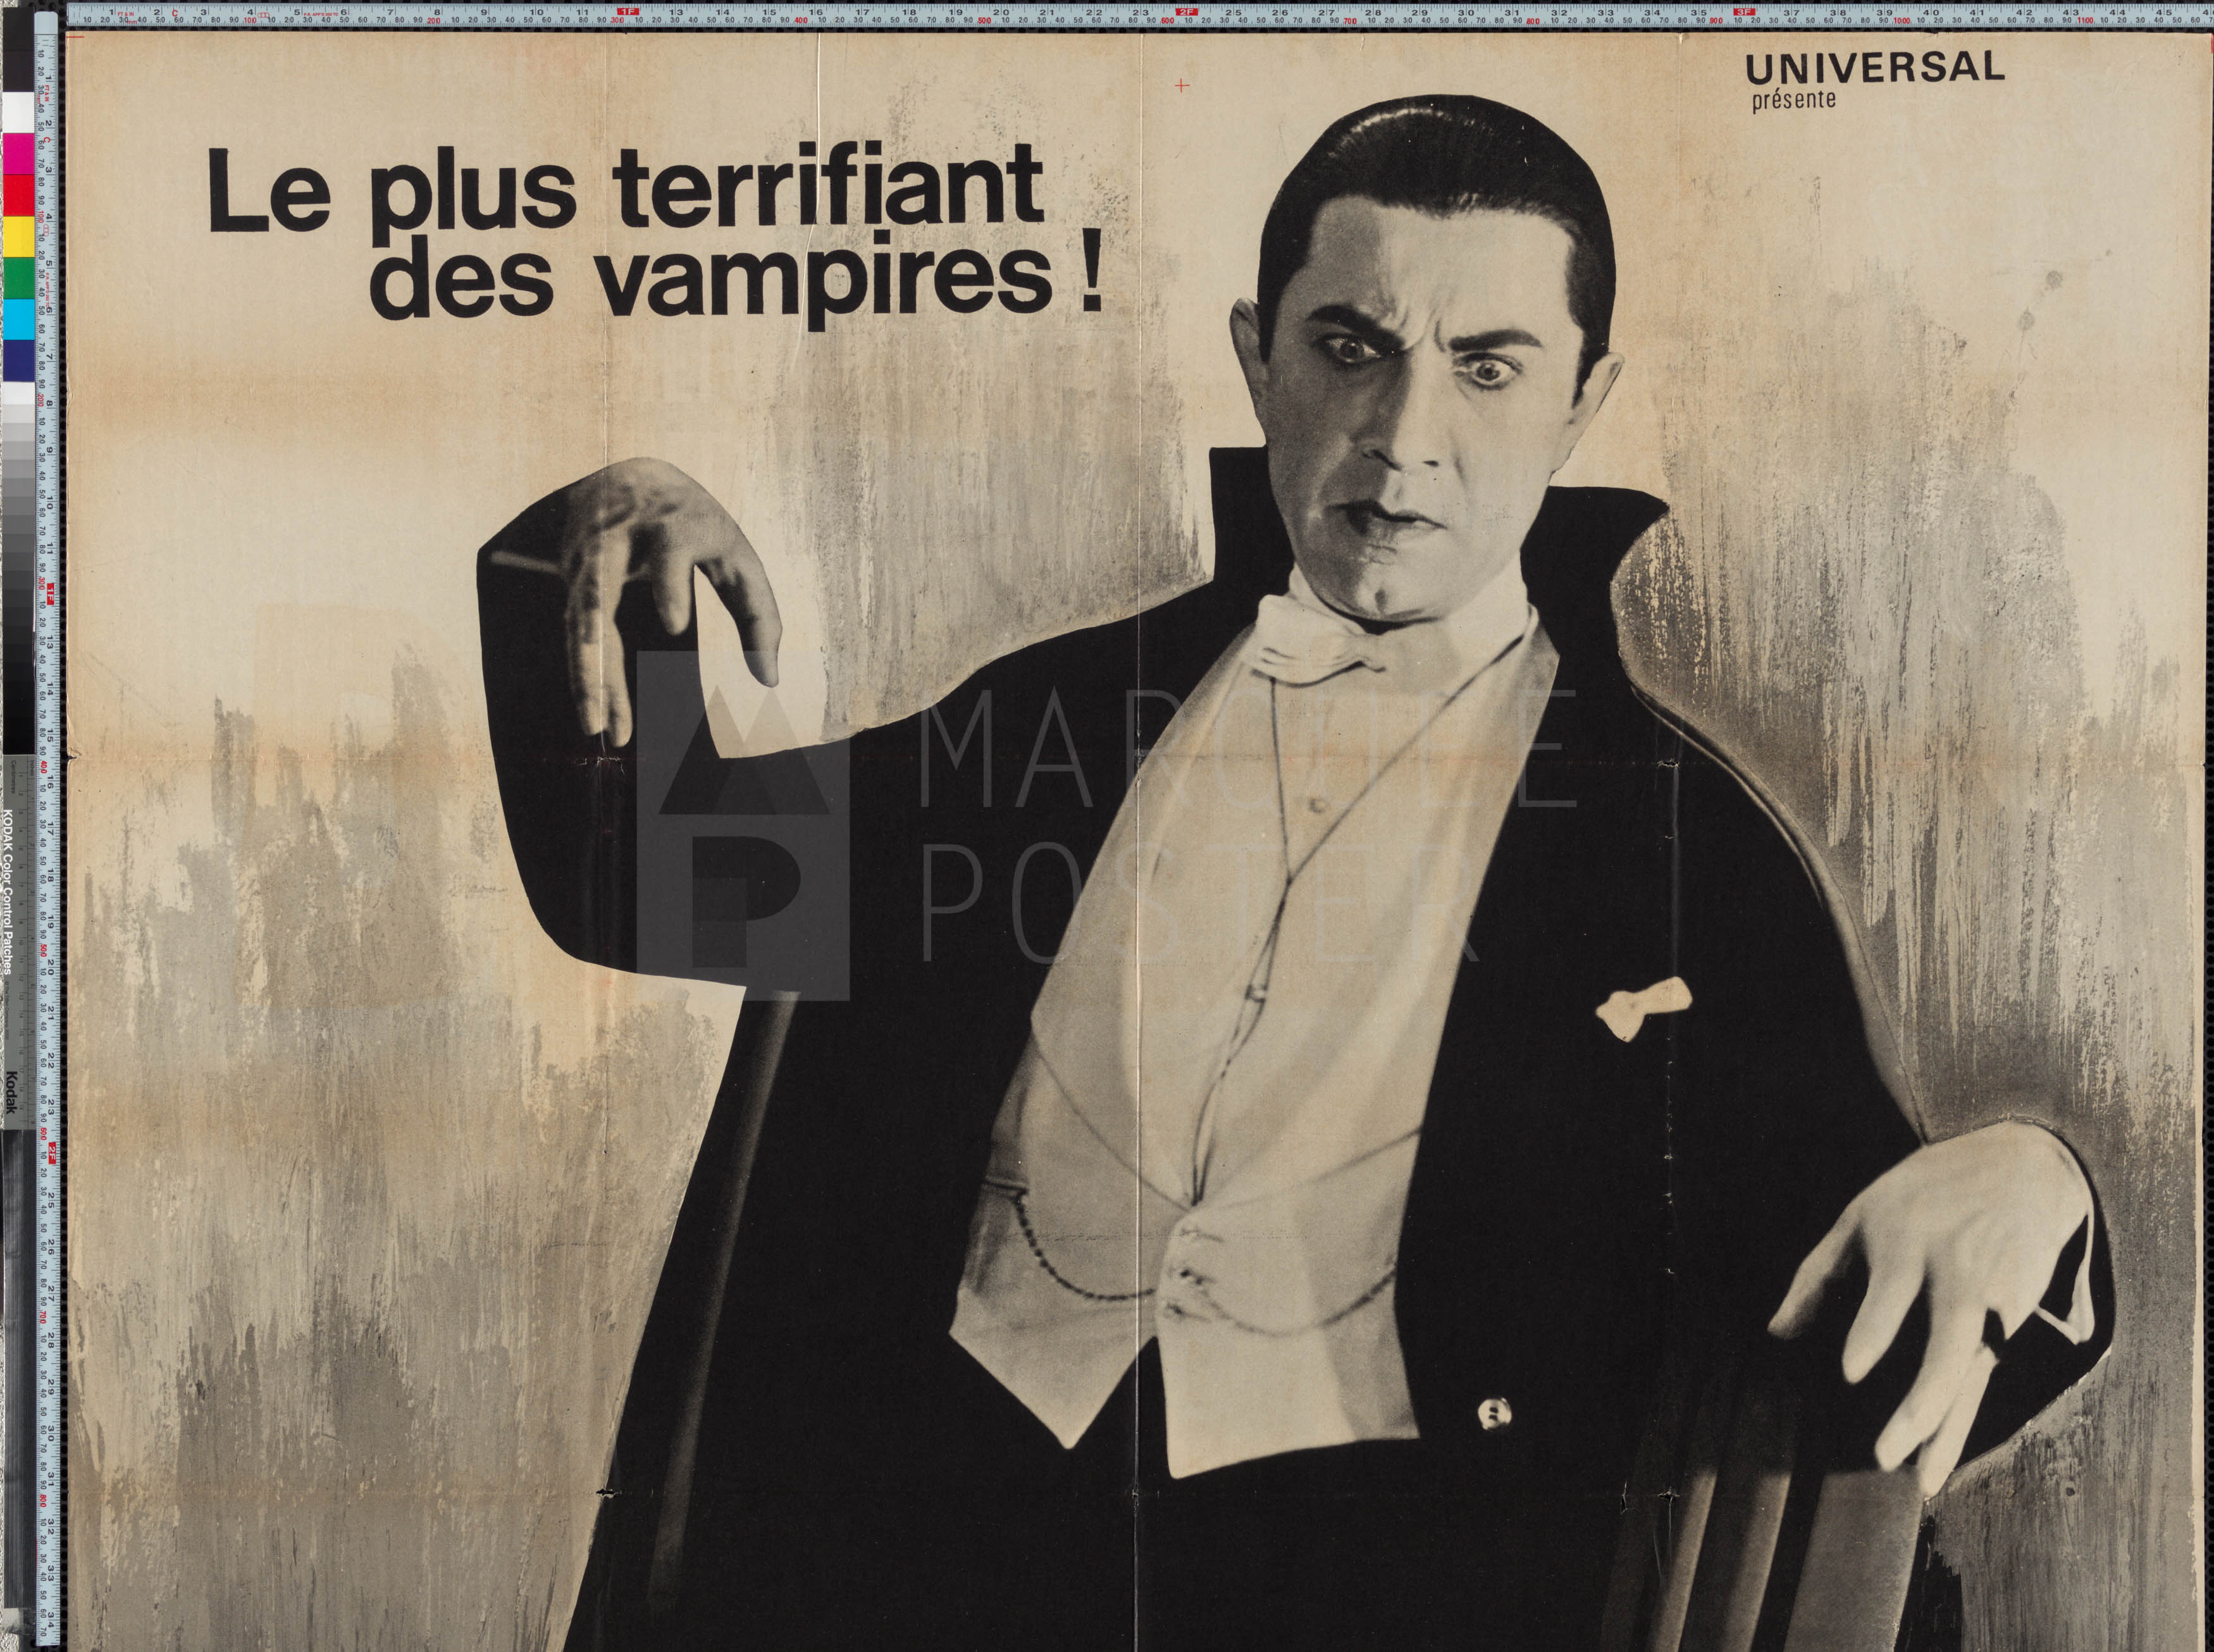 3-dracula-re-release-french-1-panel-1960s-02